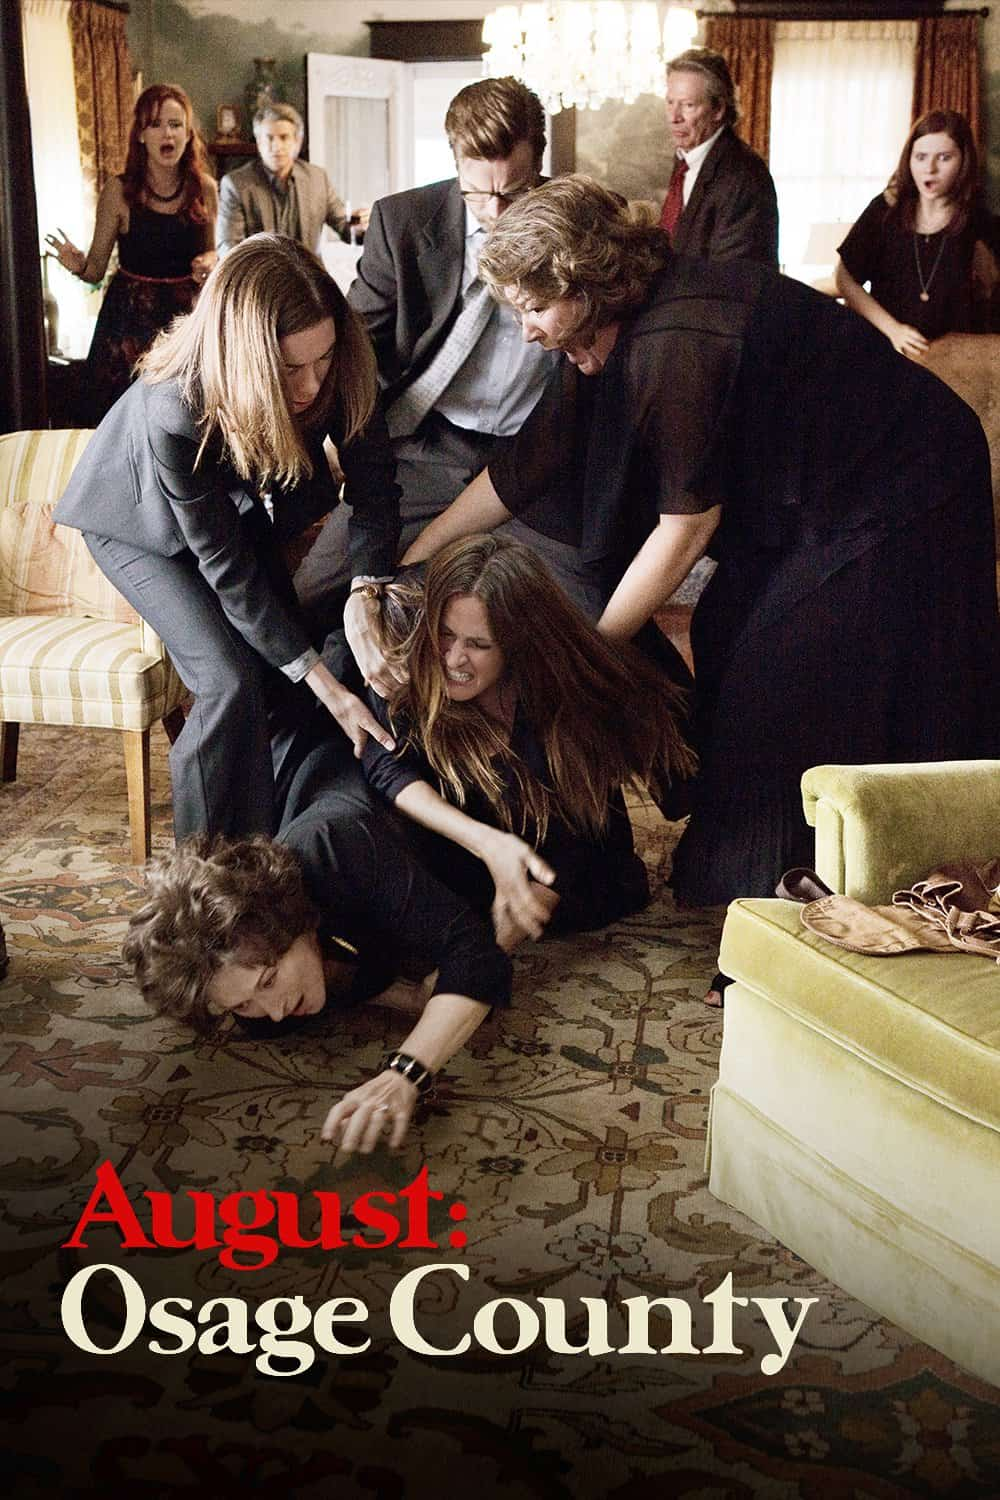 August: Osage County, 2013